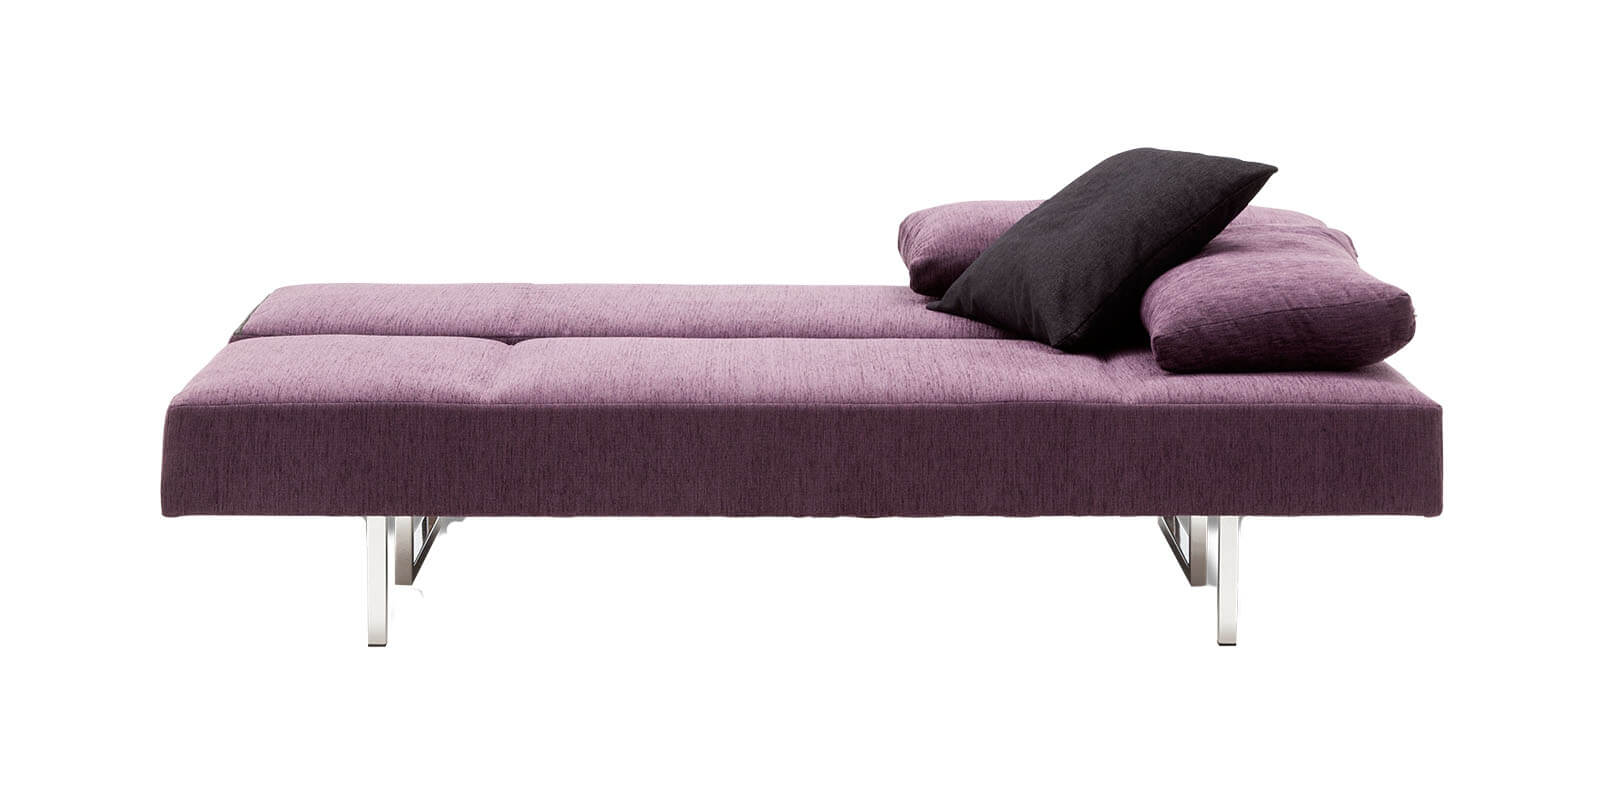 Chaiselongue Recamiere Coin Sofa Bed